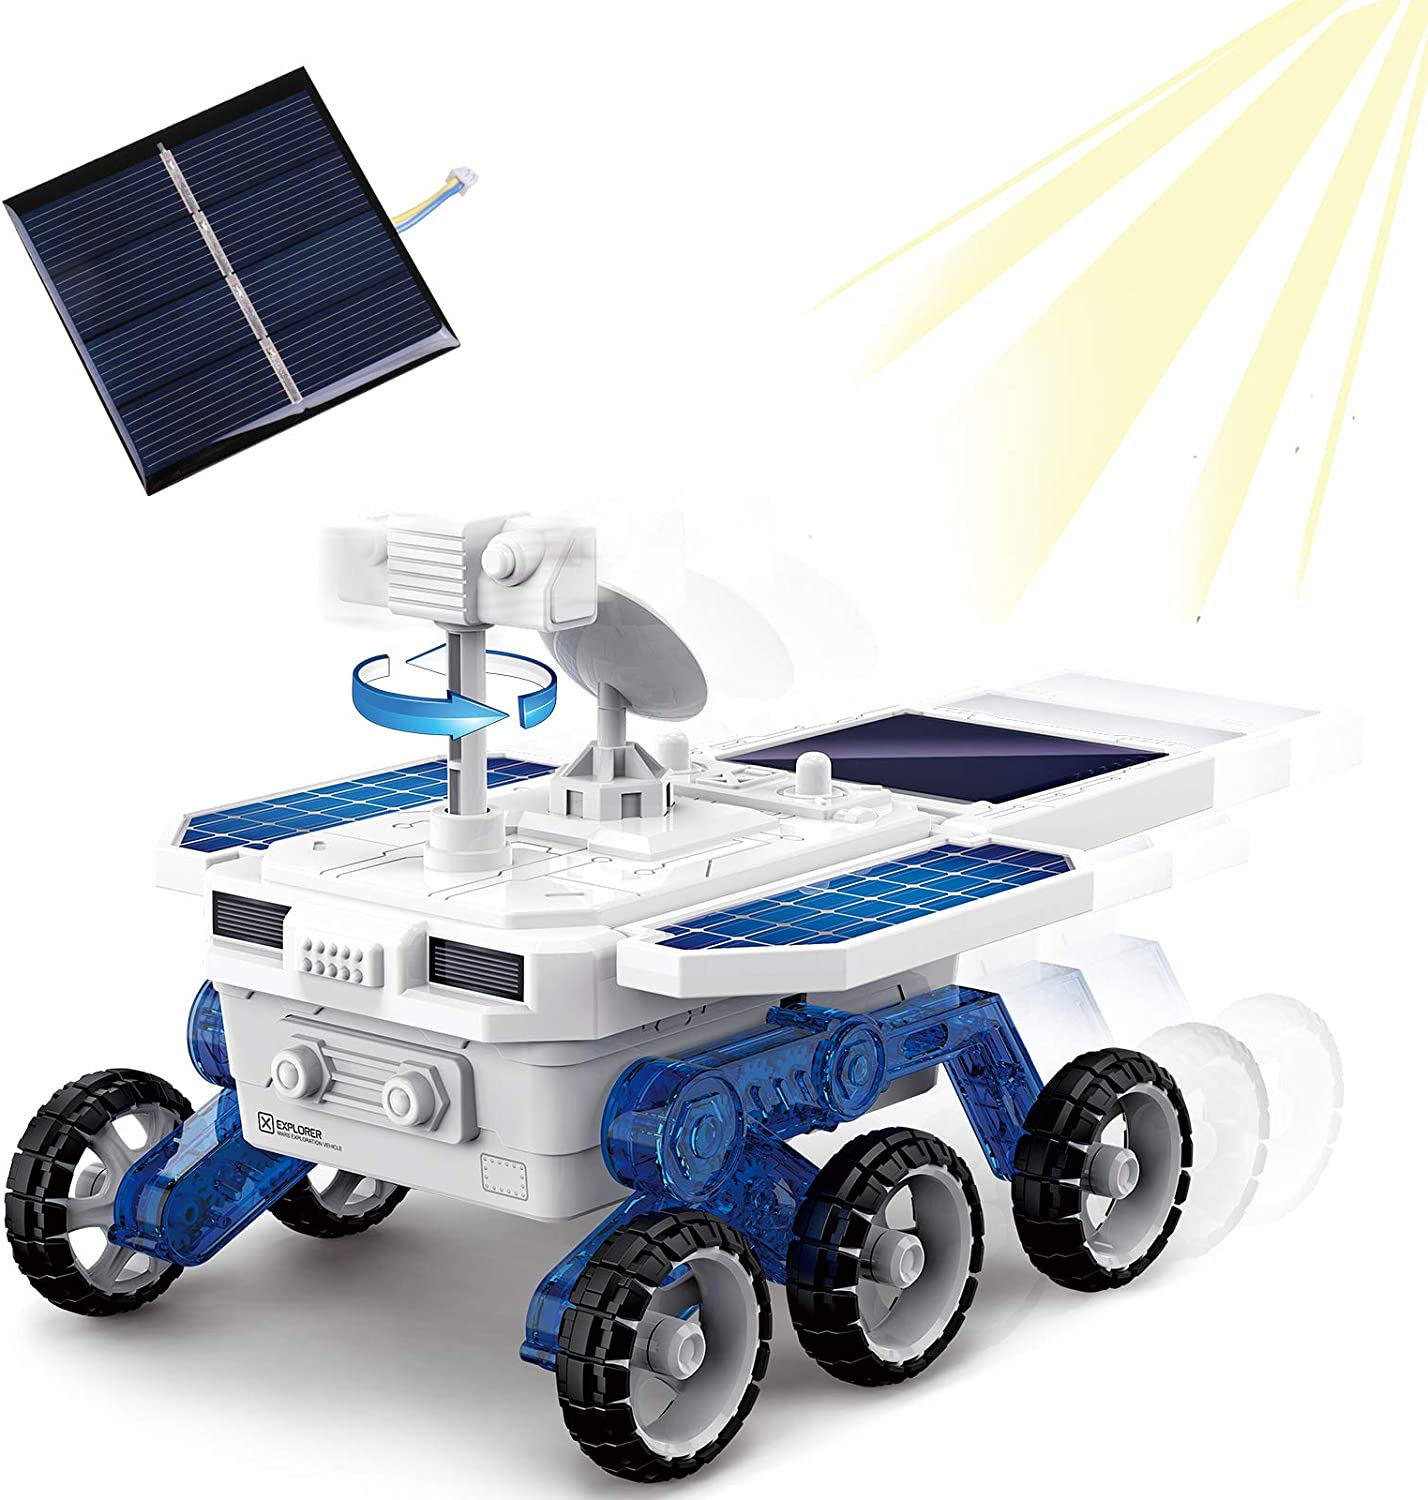 rolimate DIY Car Toys, STEM Toys Solar Mars Exploration Car Toy kit, DIY Eco-Engineering Science Assembly Vehicle Truck Toy, Best Birthday Gifts for 6 7 8 9 +Year Old Boys Girls Student